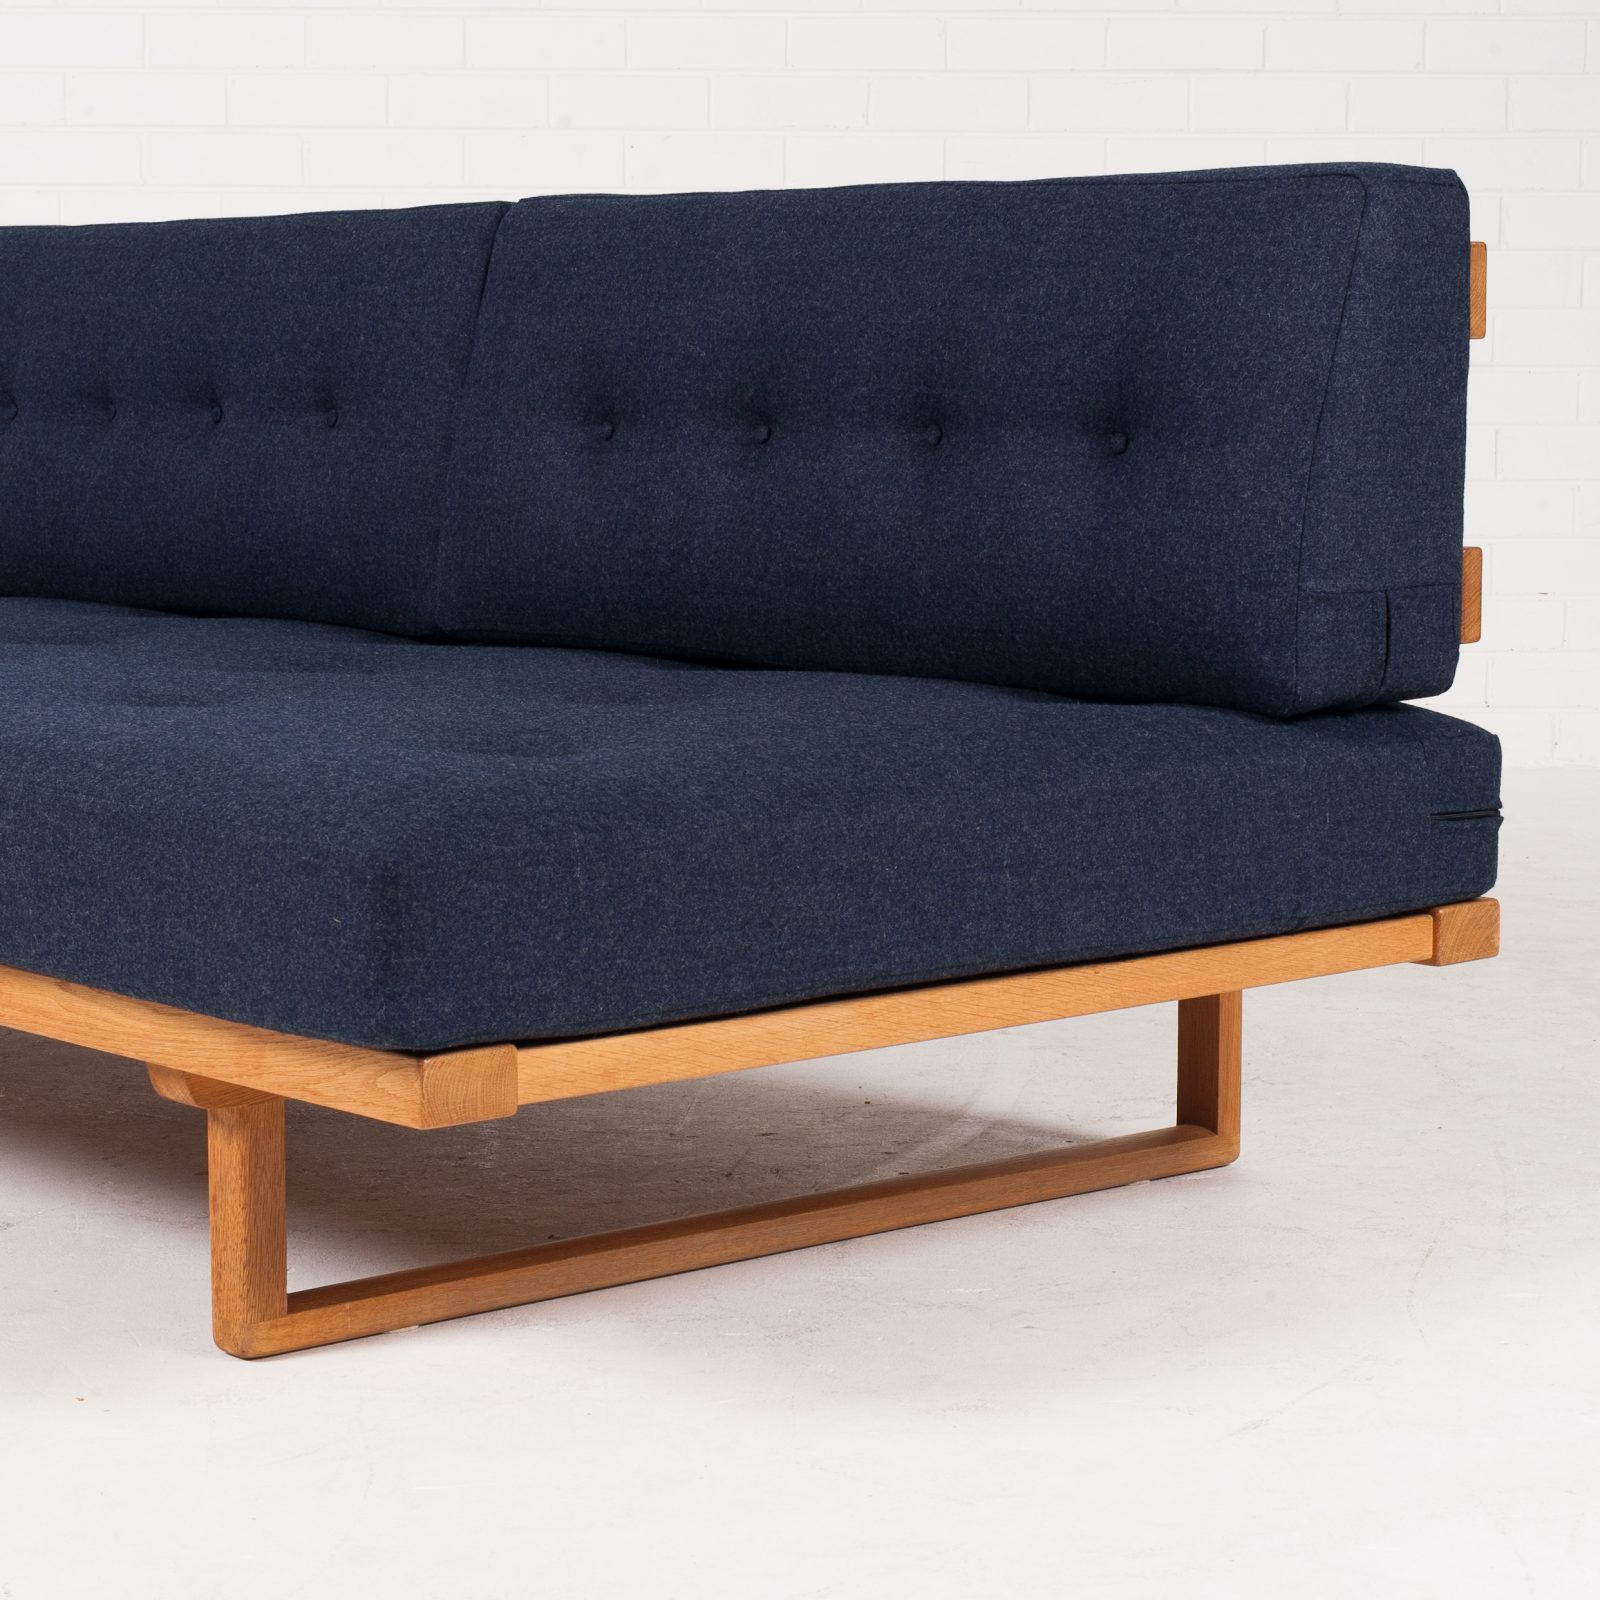 Model 4312 Daybed By Borge Mogensen In Oak Manufactured By Fredericia Furniture 1950s Denmark 04